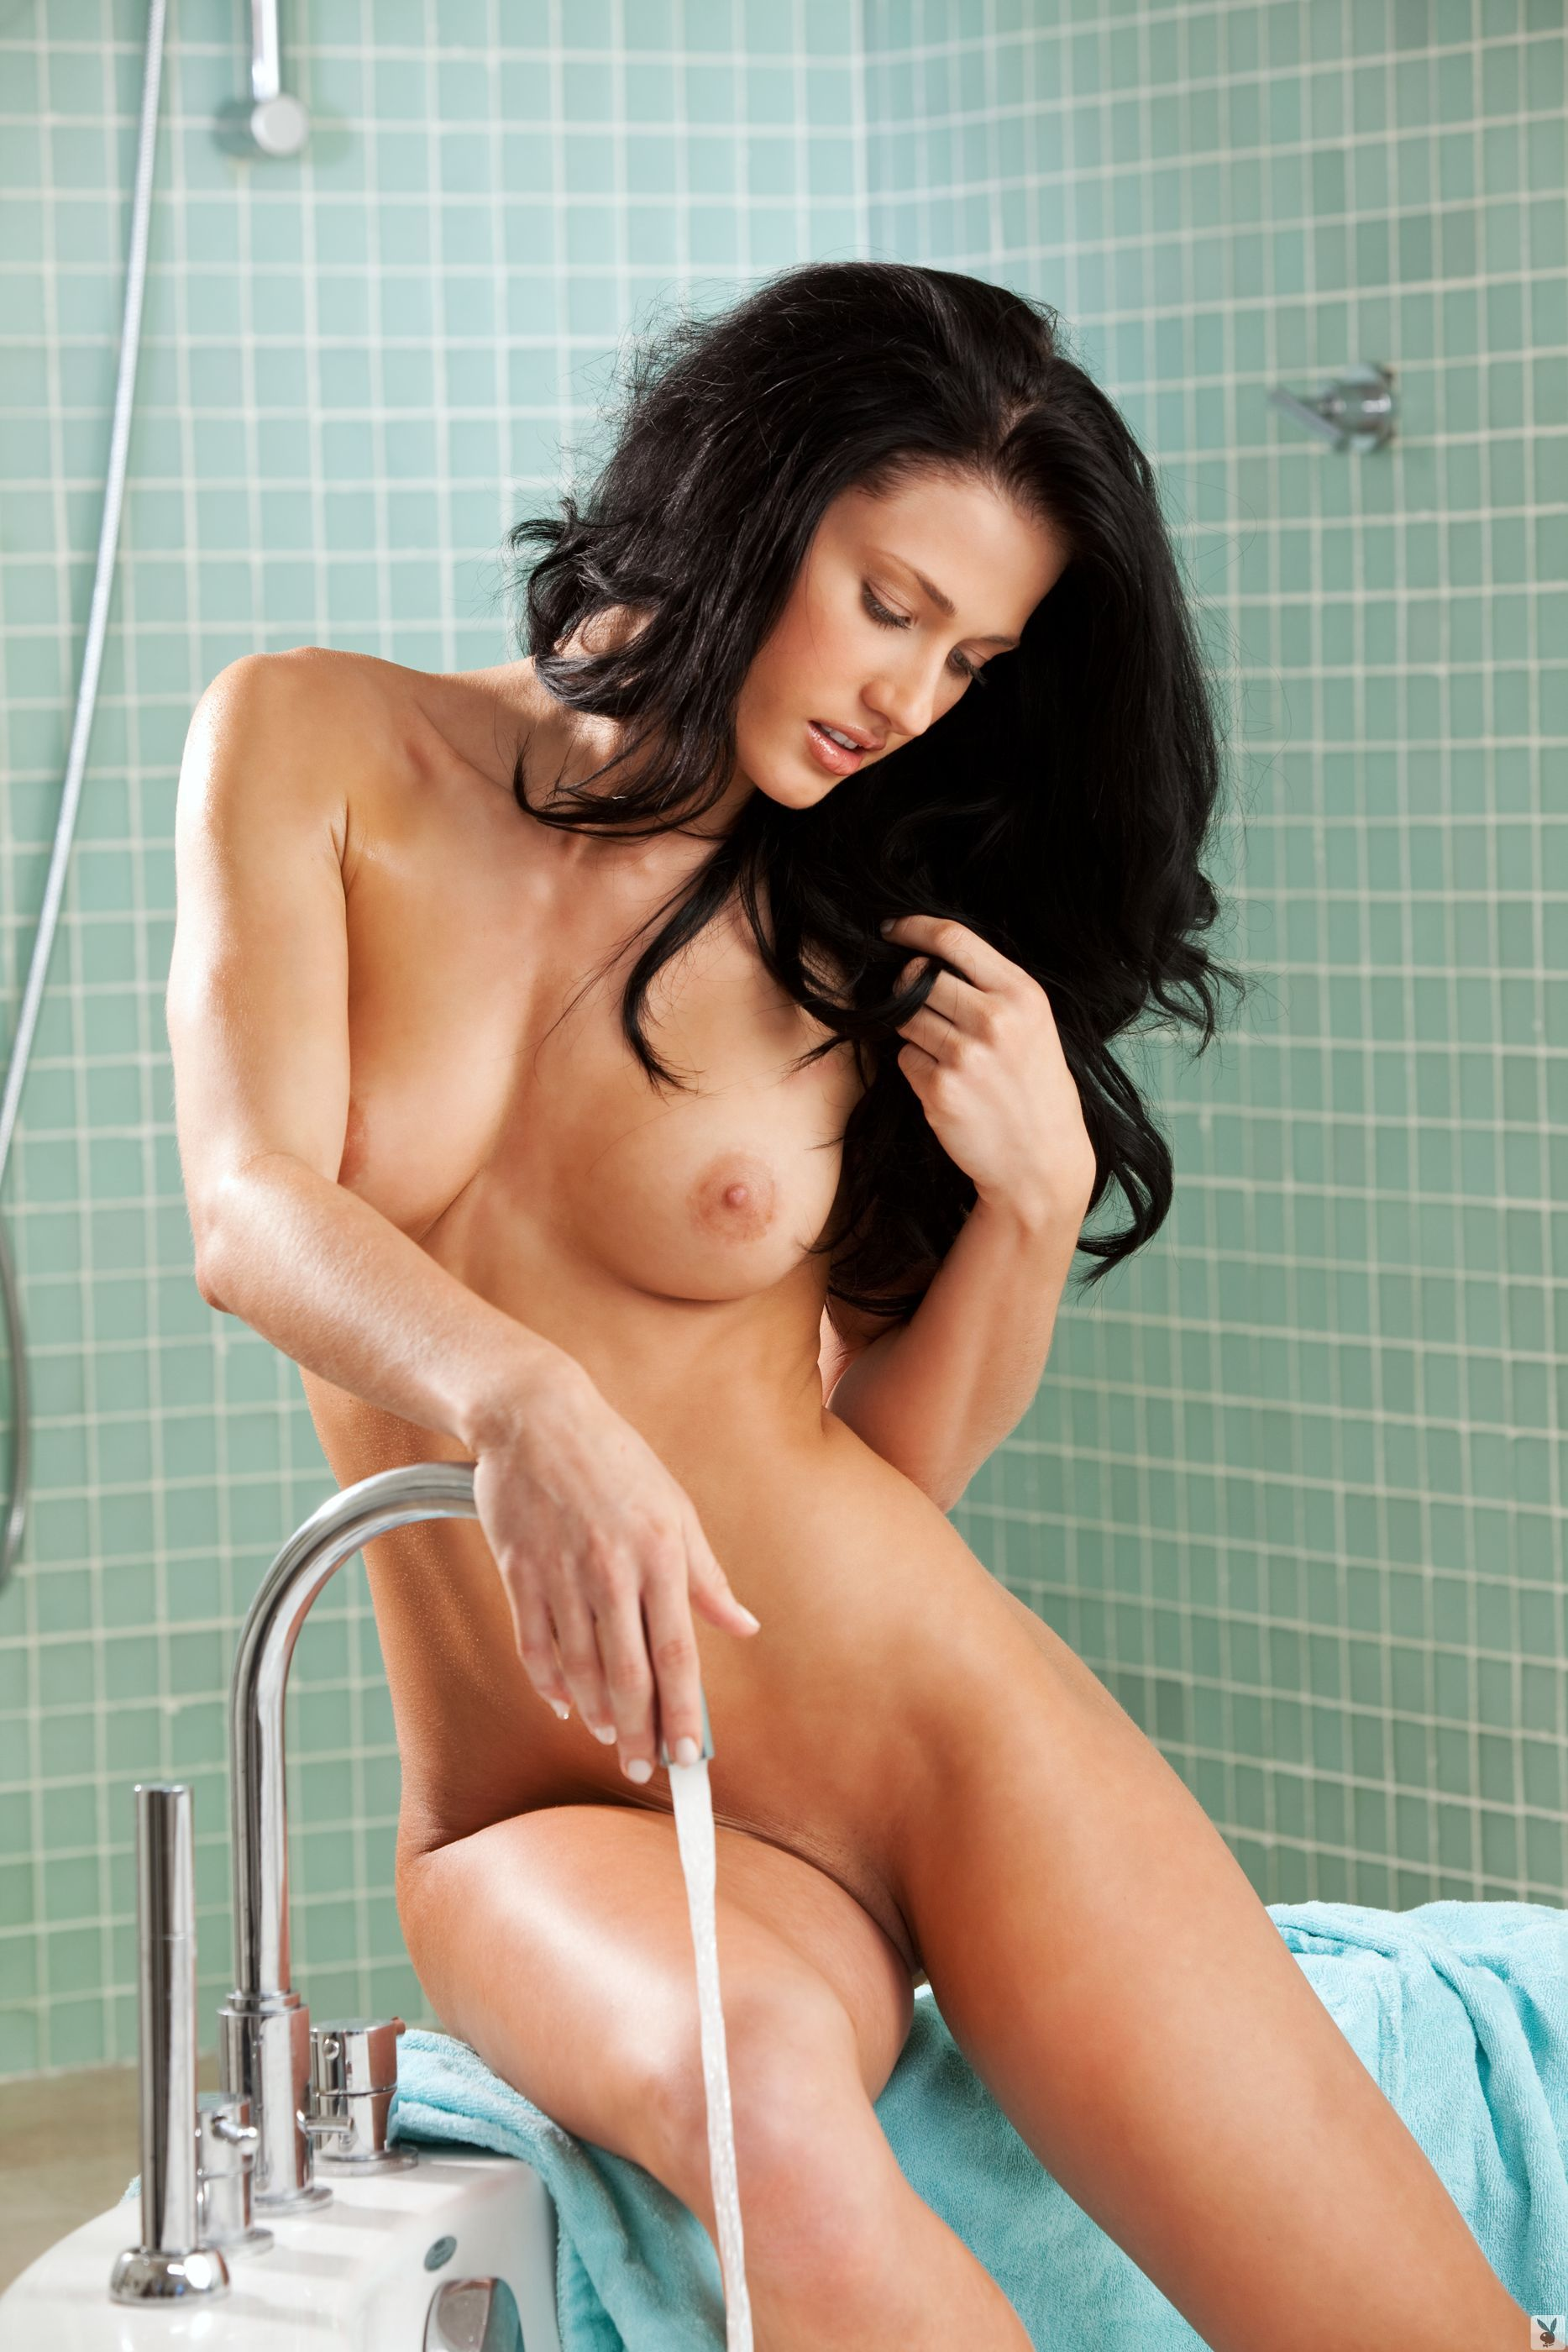 ashton-winters-brunette-nude-bathroom-playboy-11